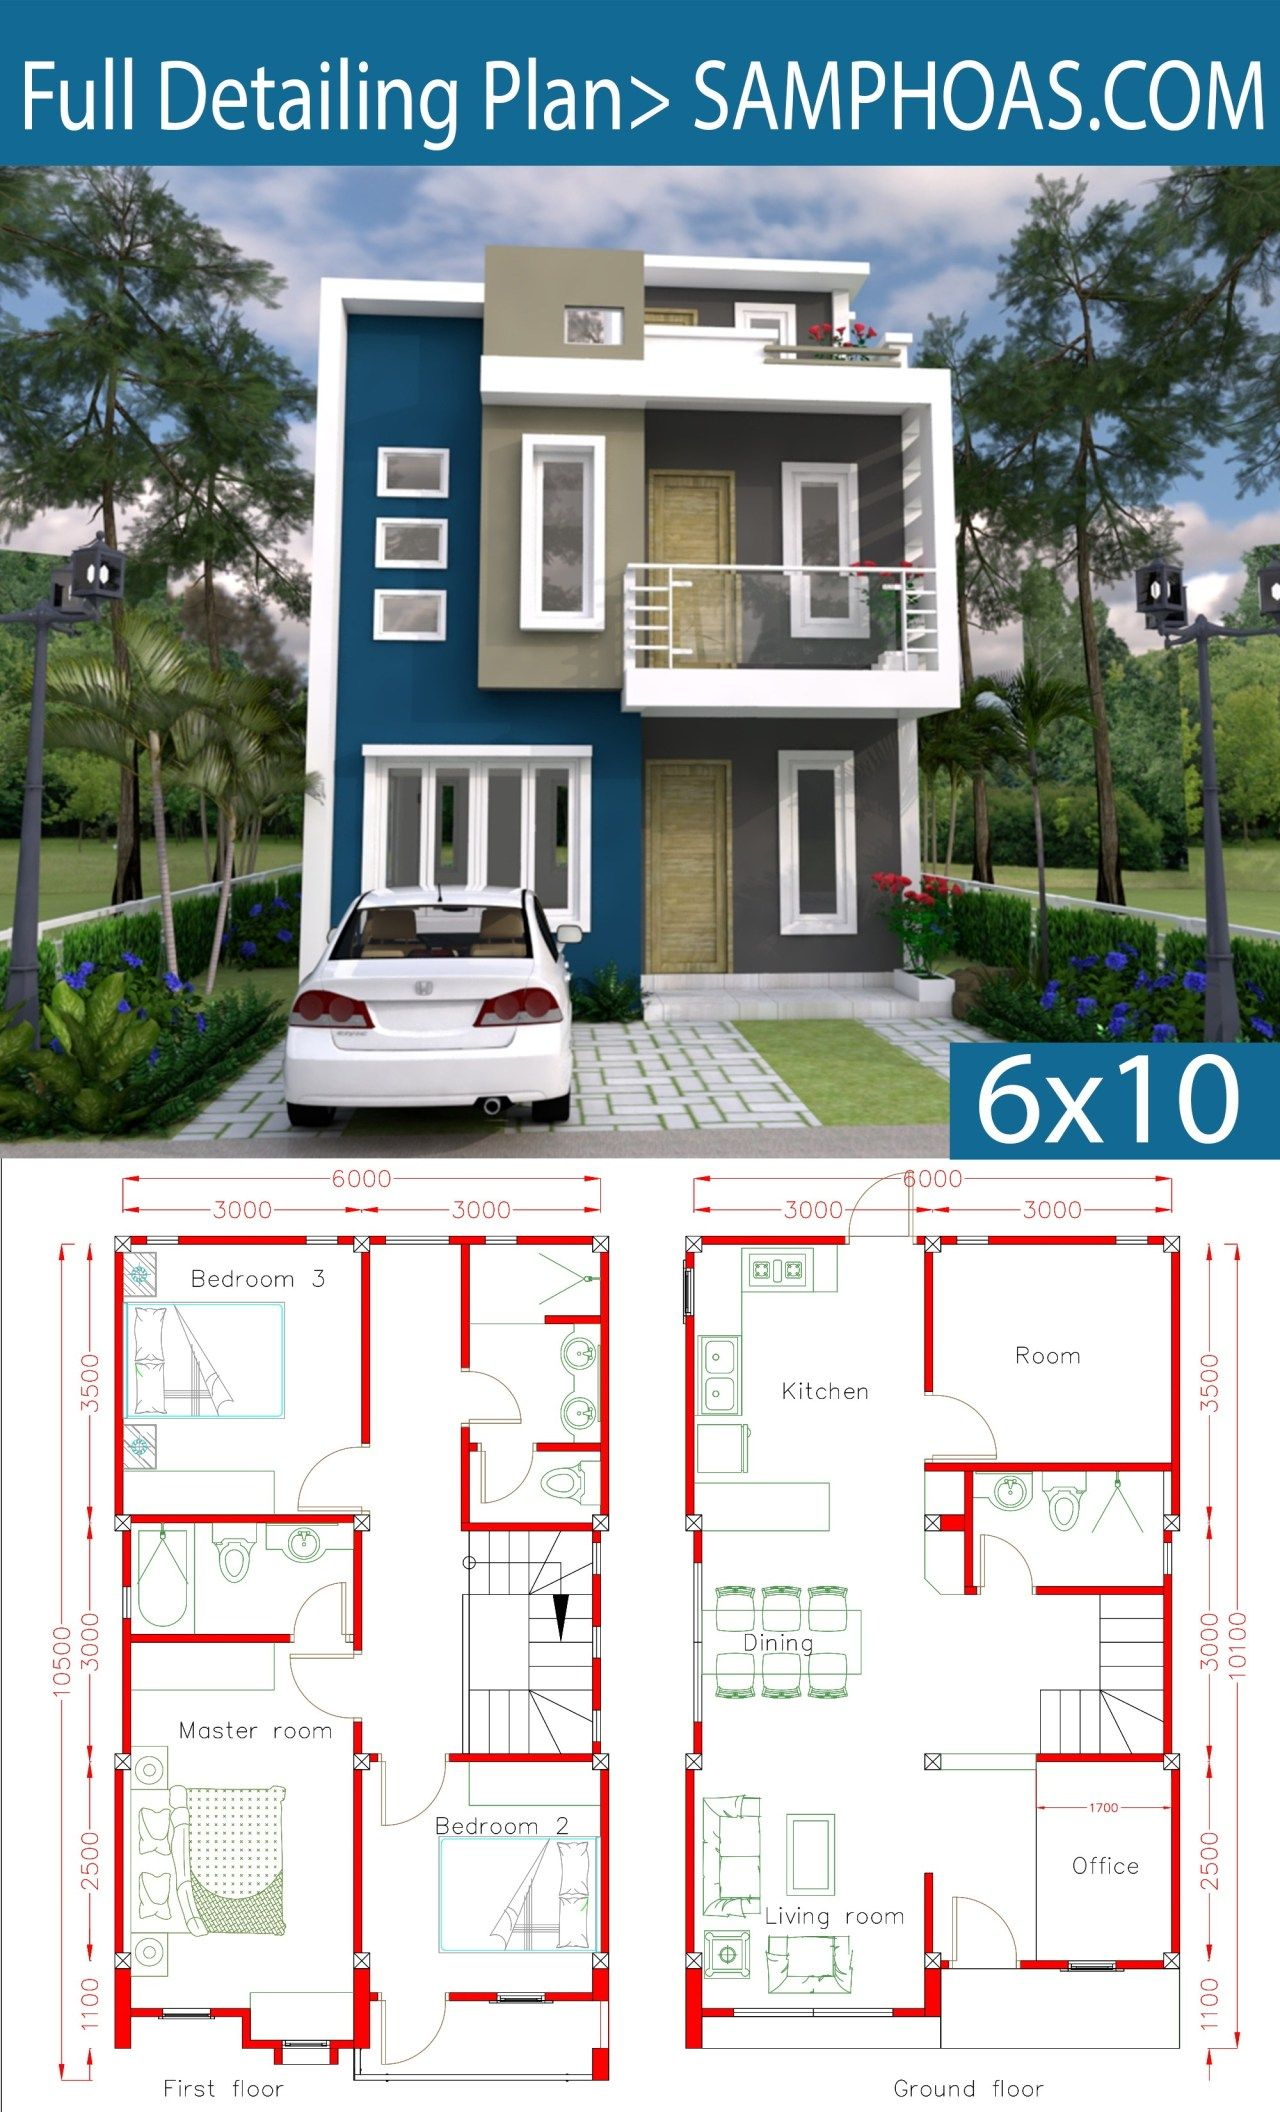 Sketchup Home Design Plan 6x10m With 4 Rooms Samphoas Plan Architectural House Plans Model House Plan House Layout Plans